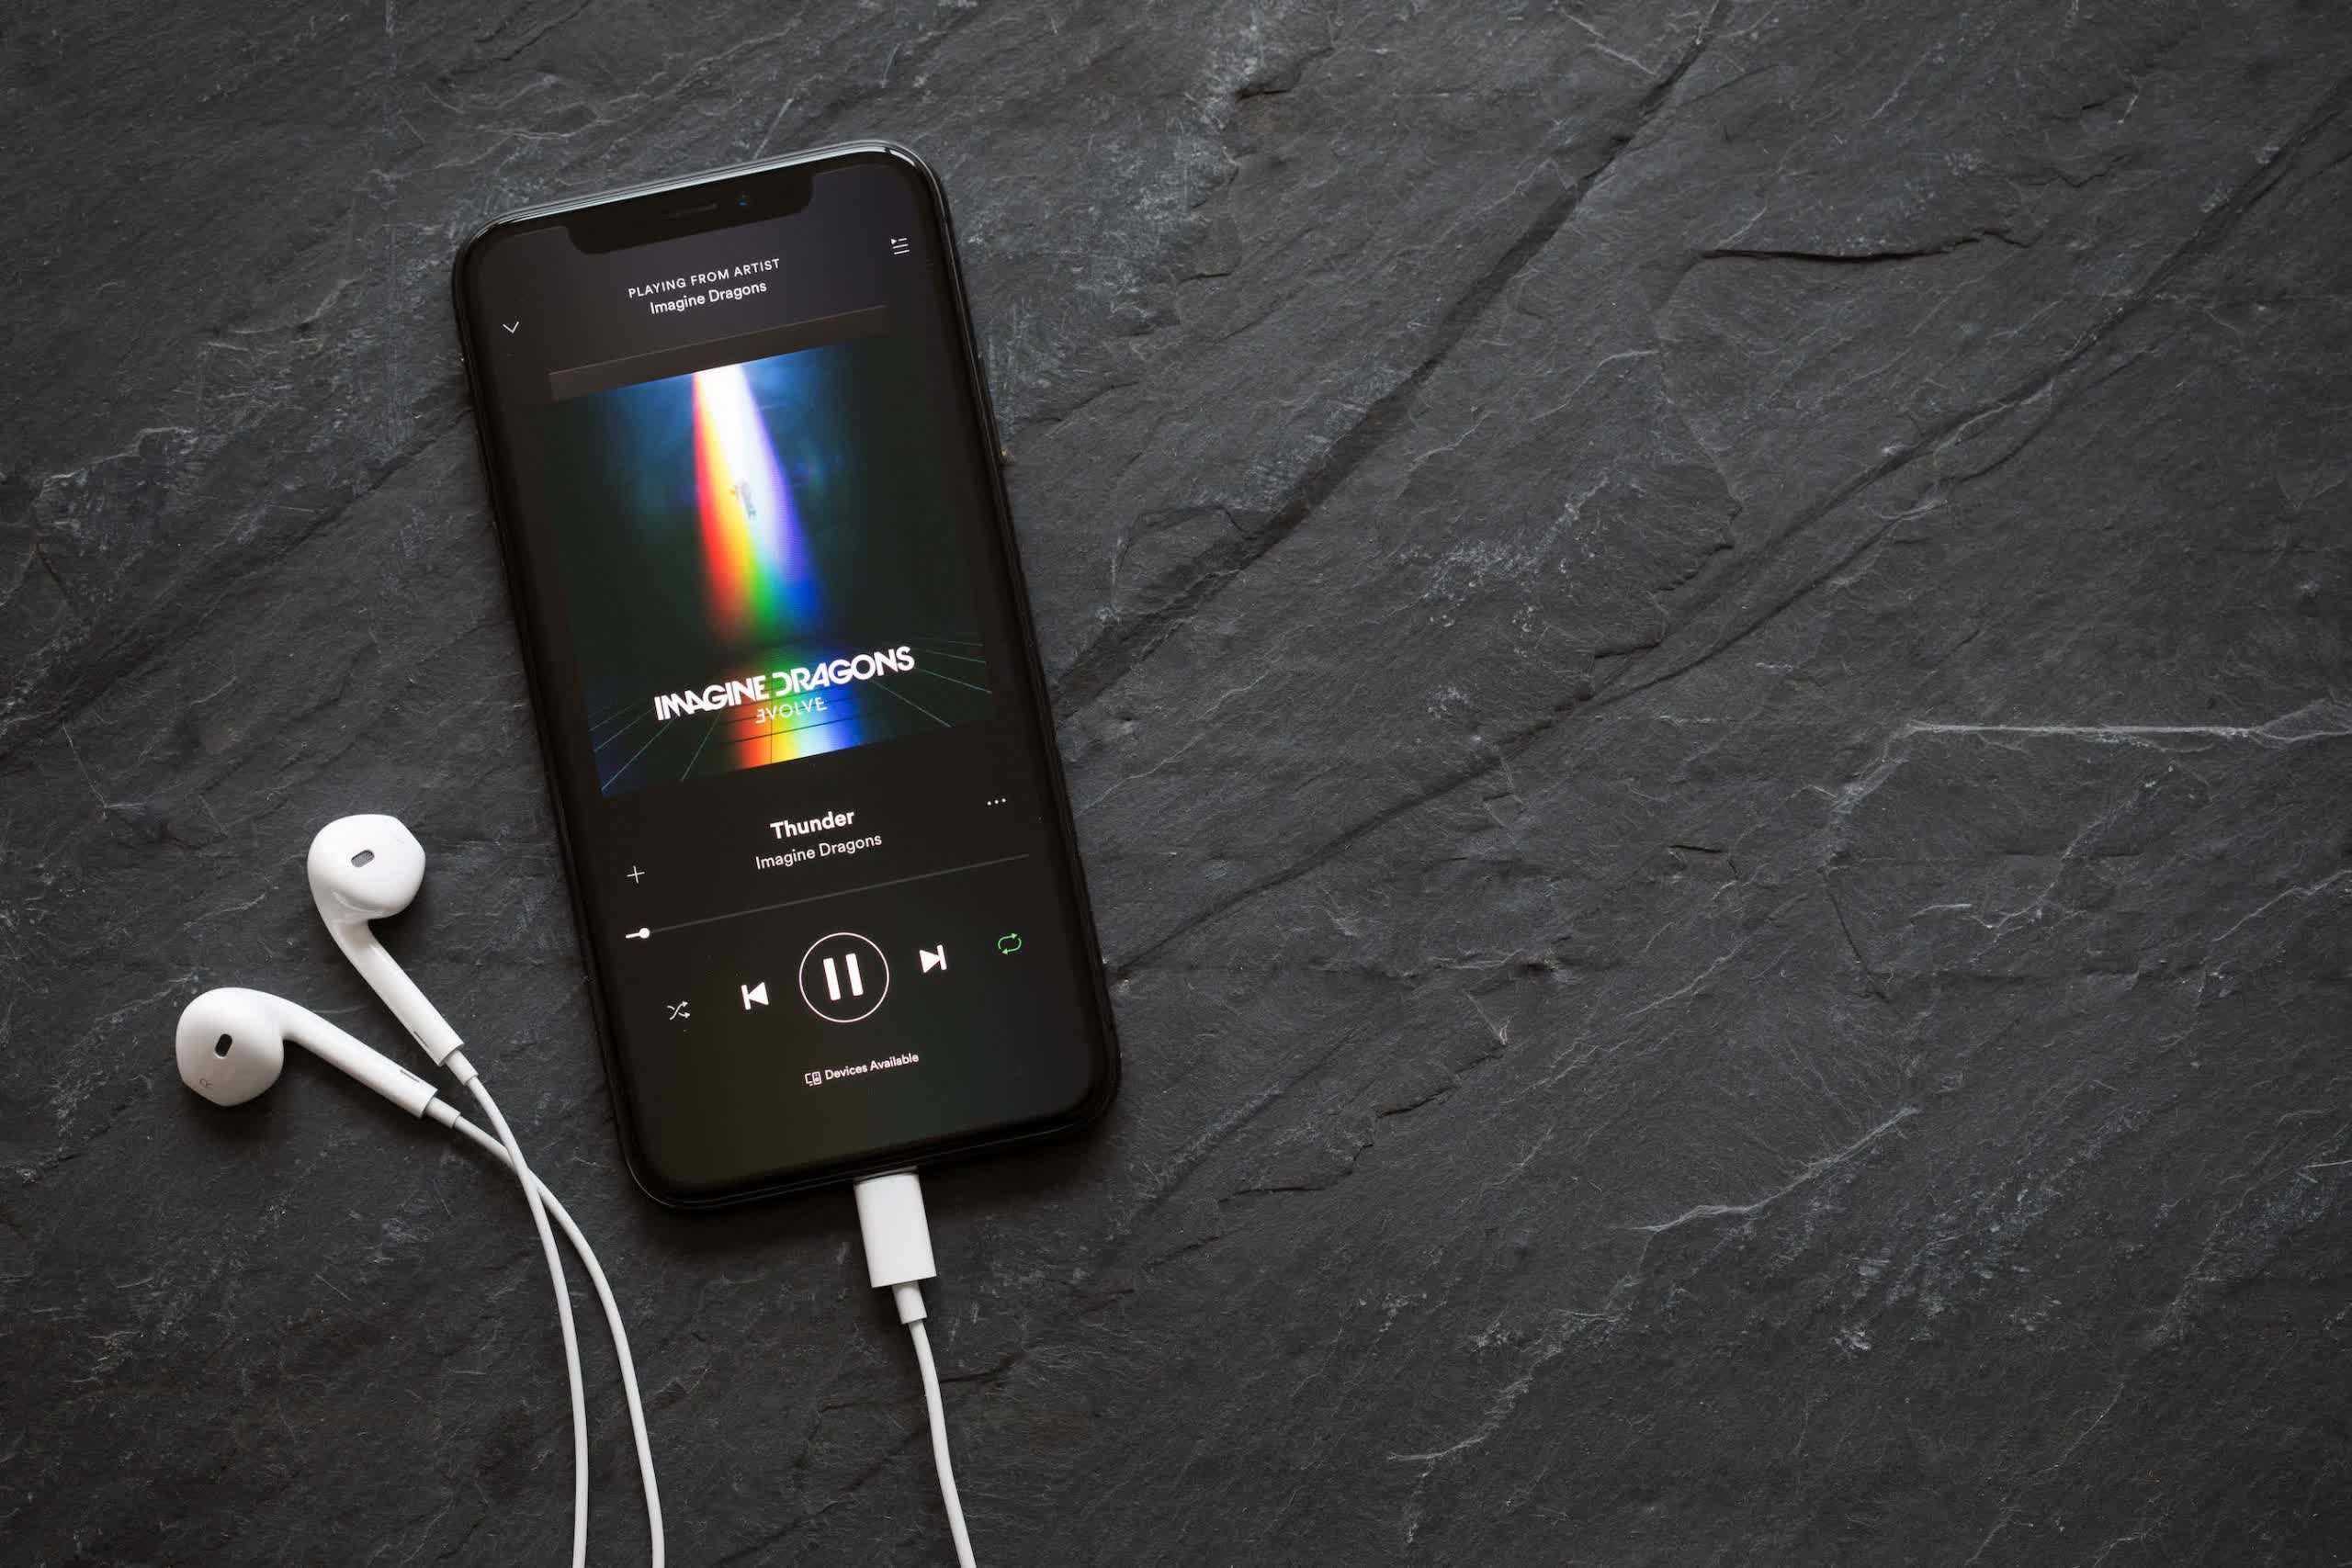 iOS 14.5 beta lets users set their default music app to any third-party alternative they choose